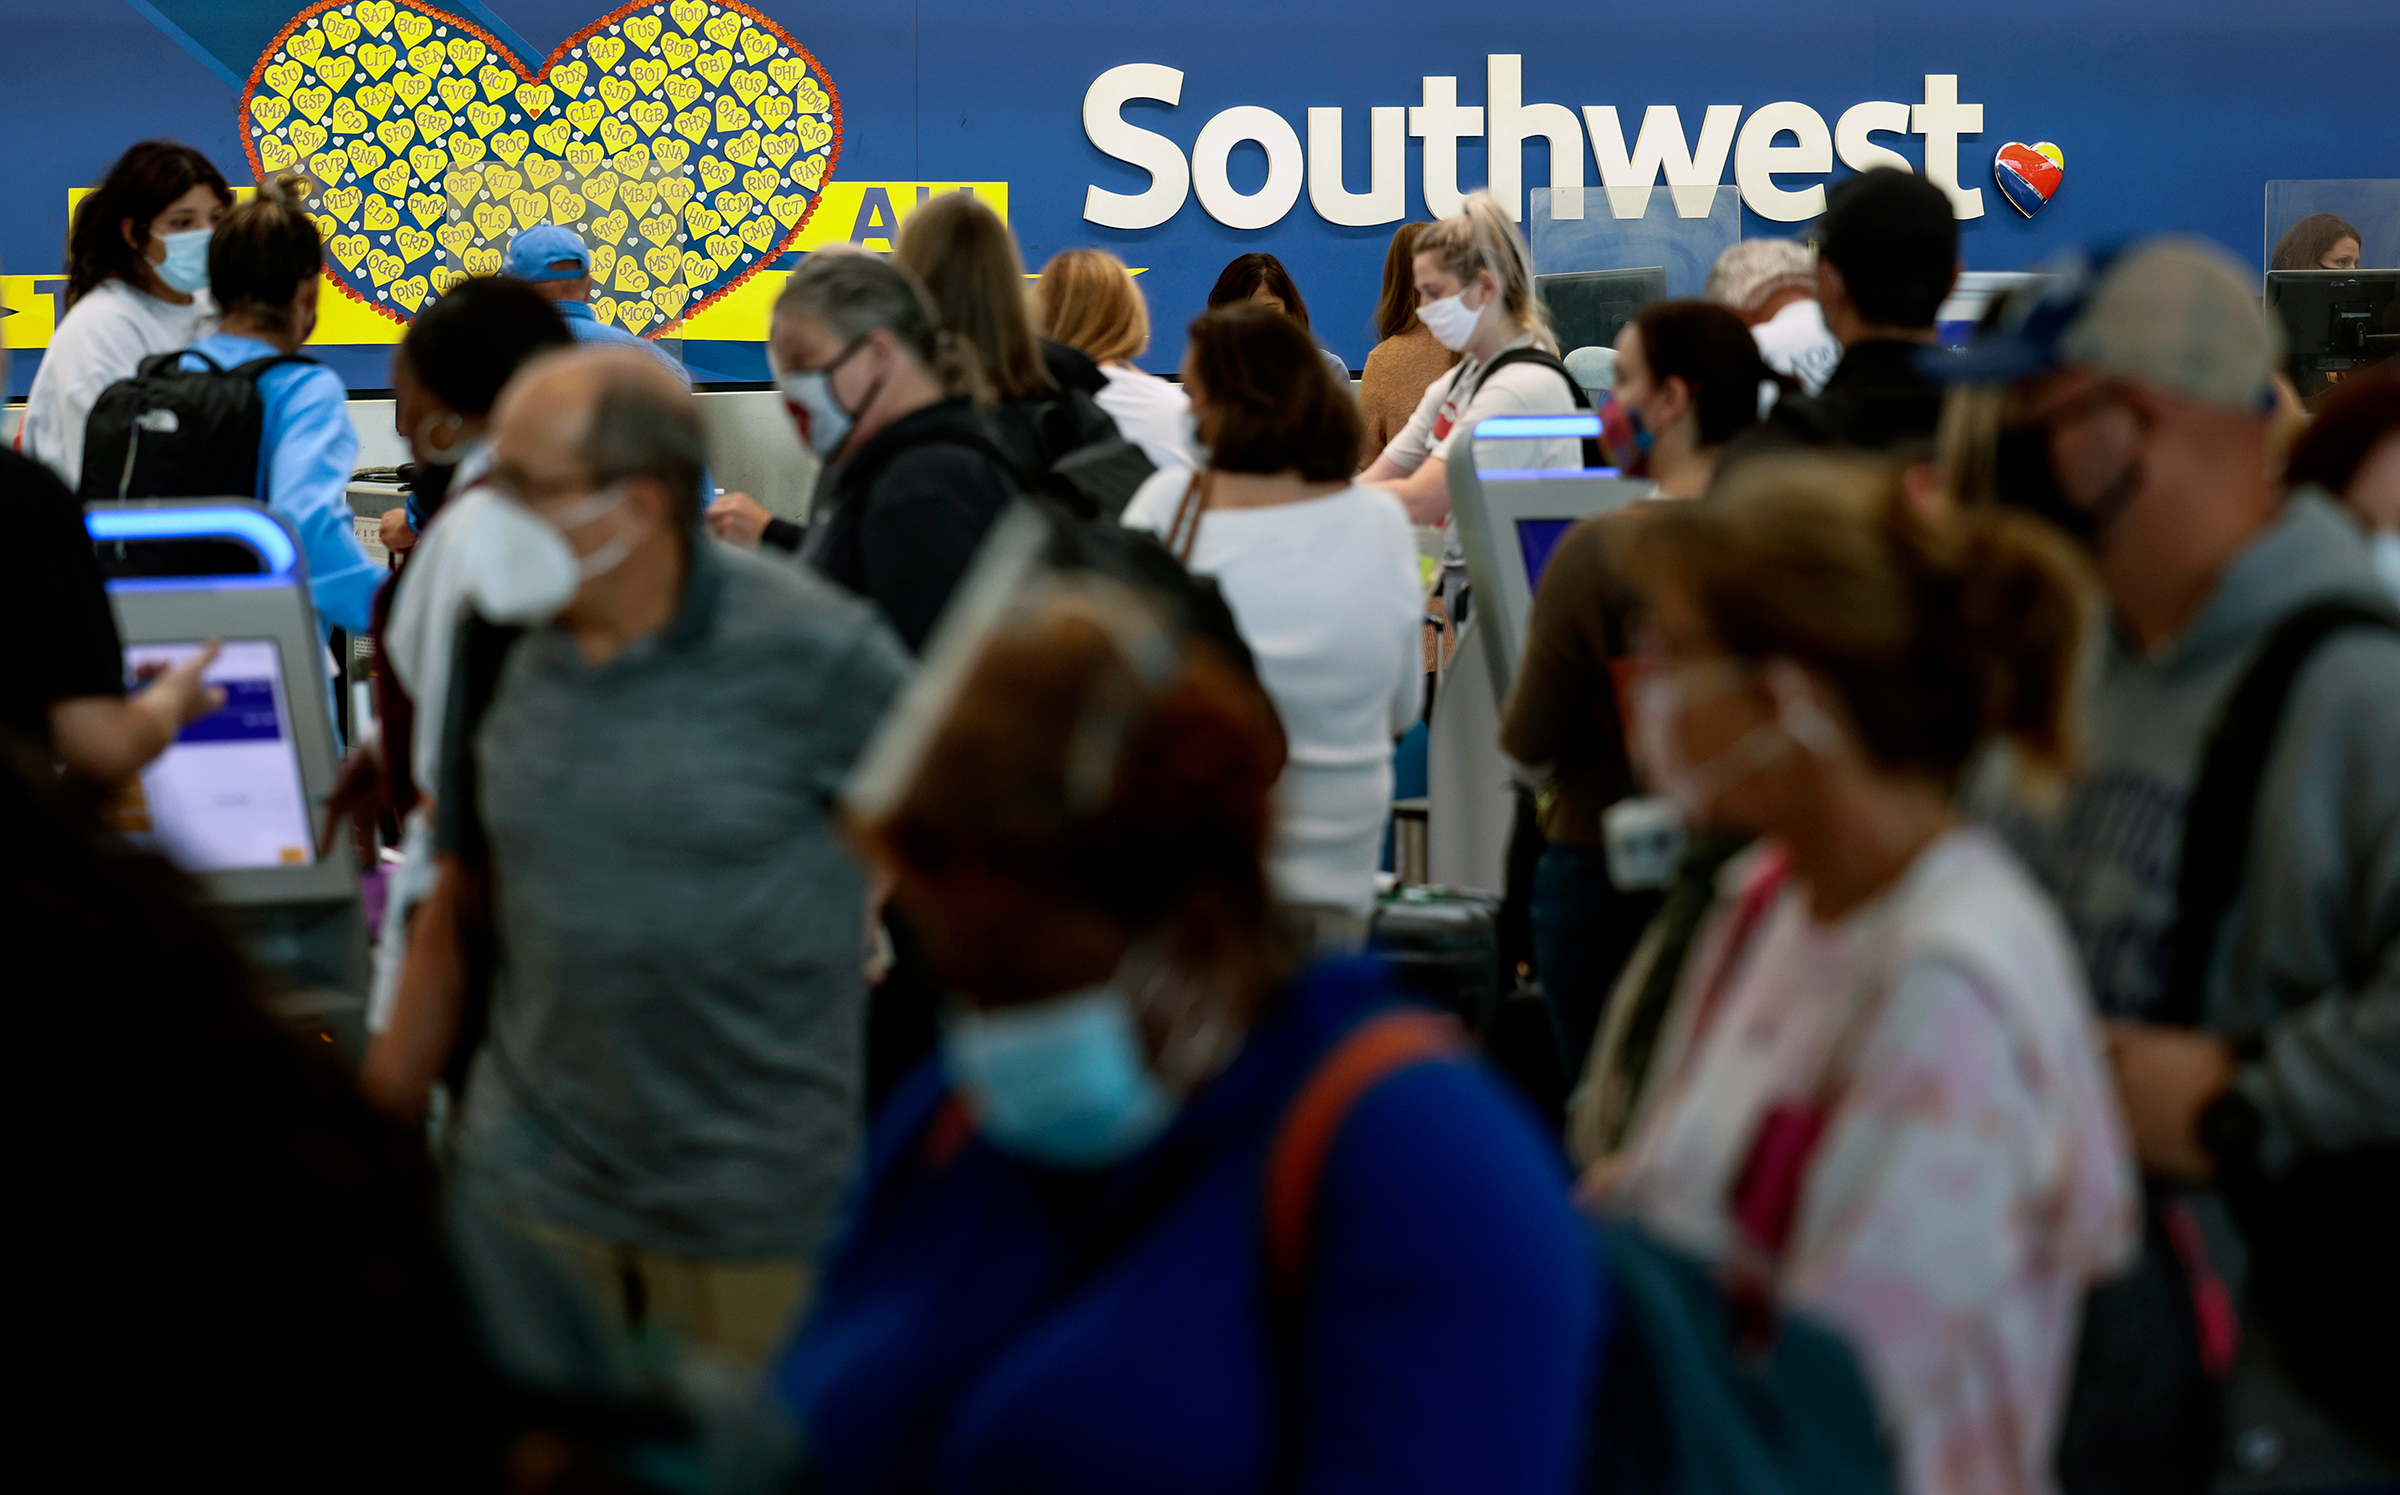 """Southwest Airlines, which is headquartered in Dallas, is among the businesses that have said they will continue to require vaccination, telling TIME they feel the federal action """"supersedes"""" state laws."""